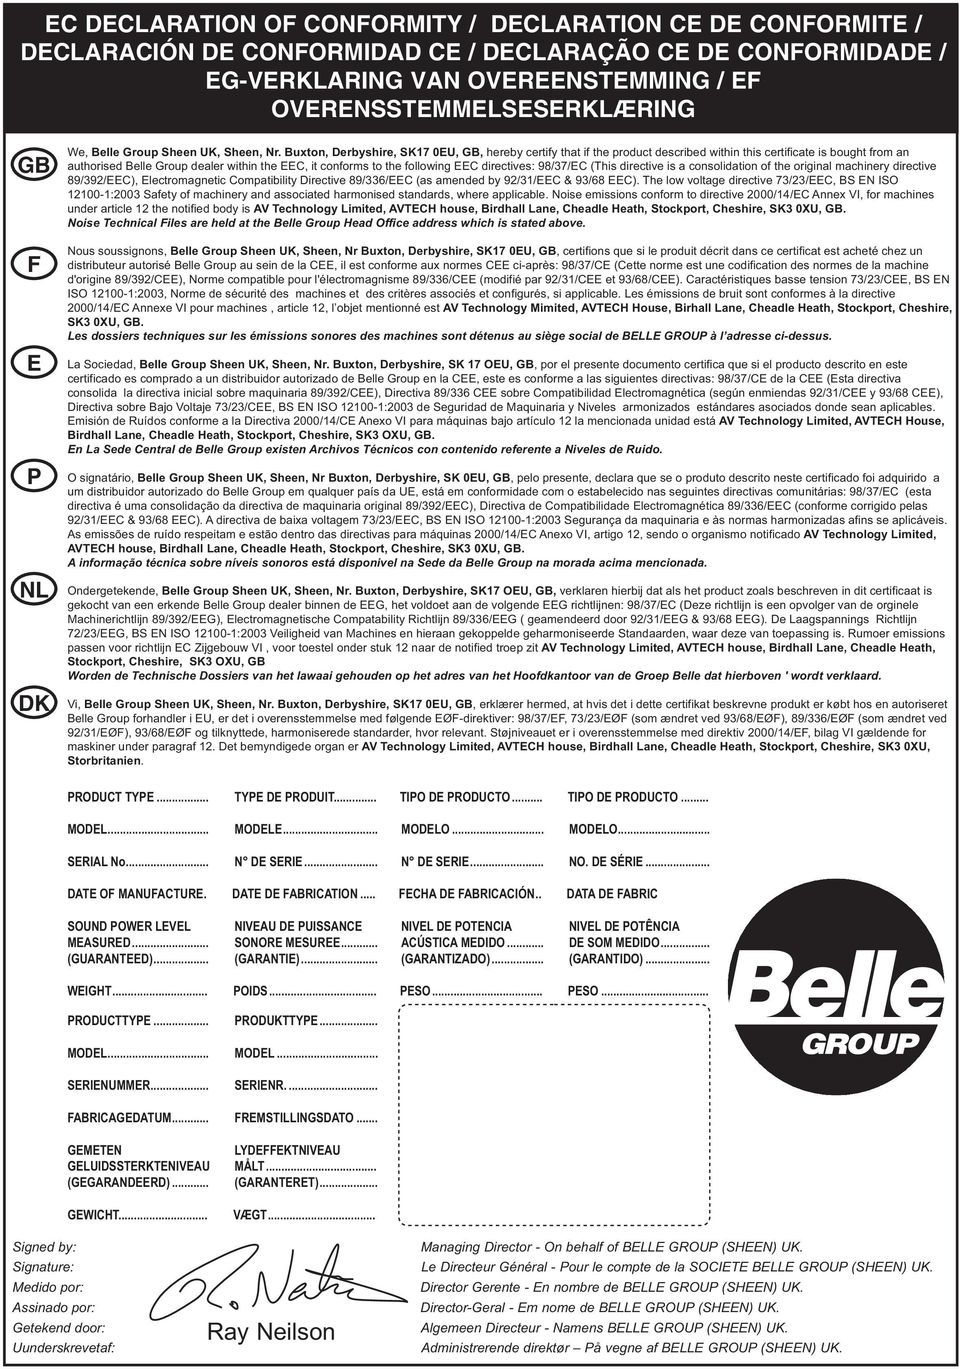 Buxton, Derbyshire, SK17 0EU, GB, hereby certify that if the product described within this certificate is bought from an authorised Belle Group dealer within the EEC, it conforms to the following EEC